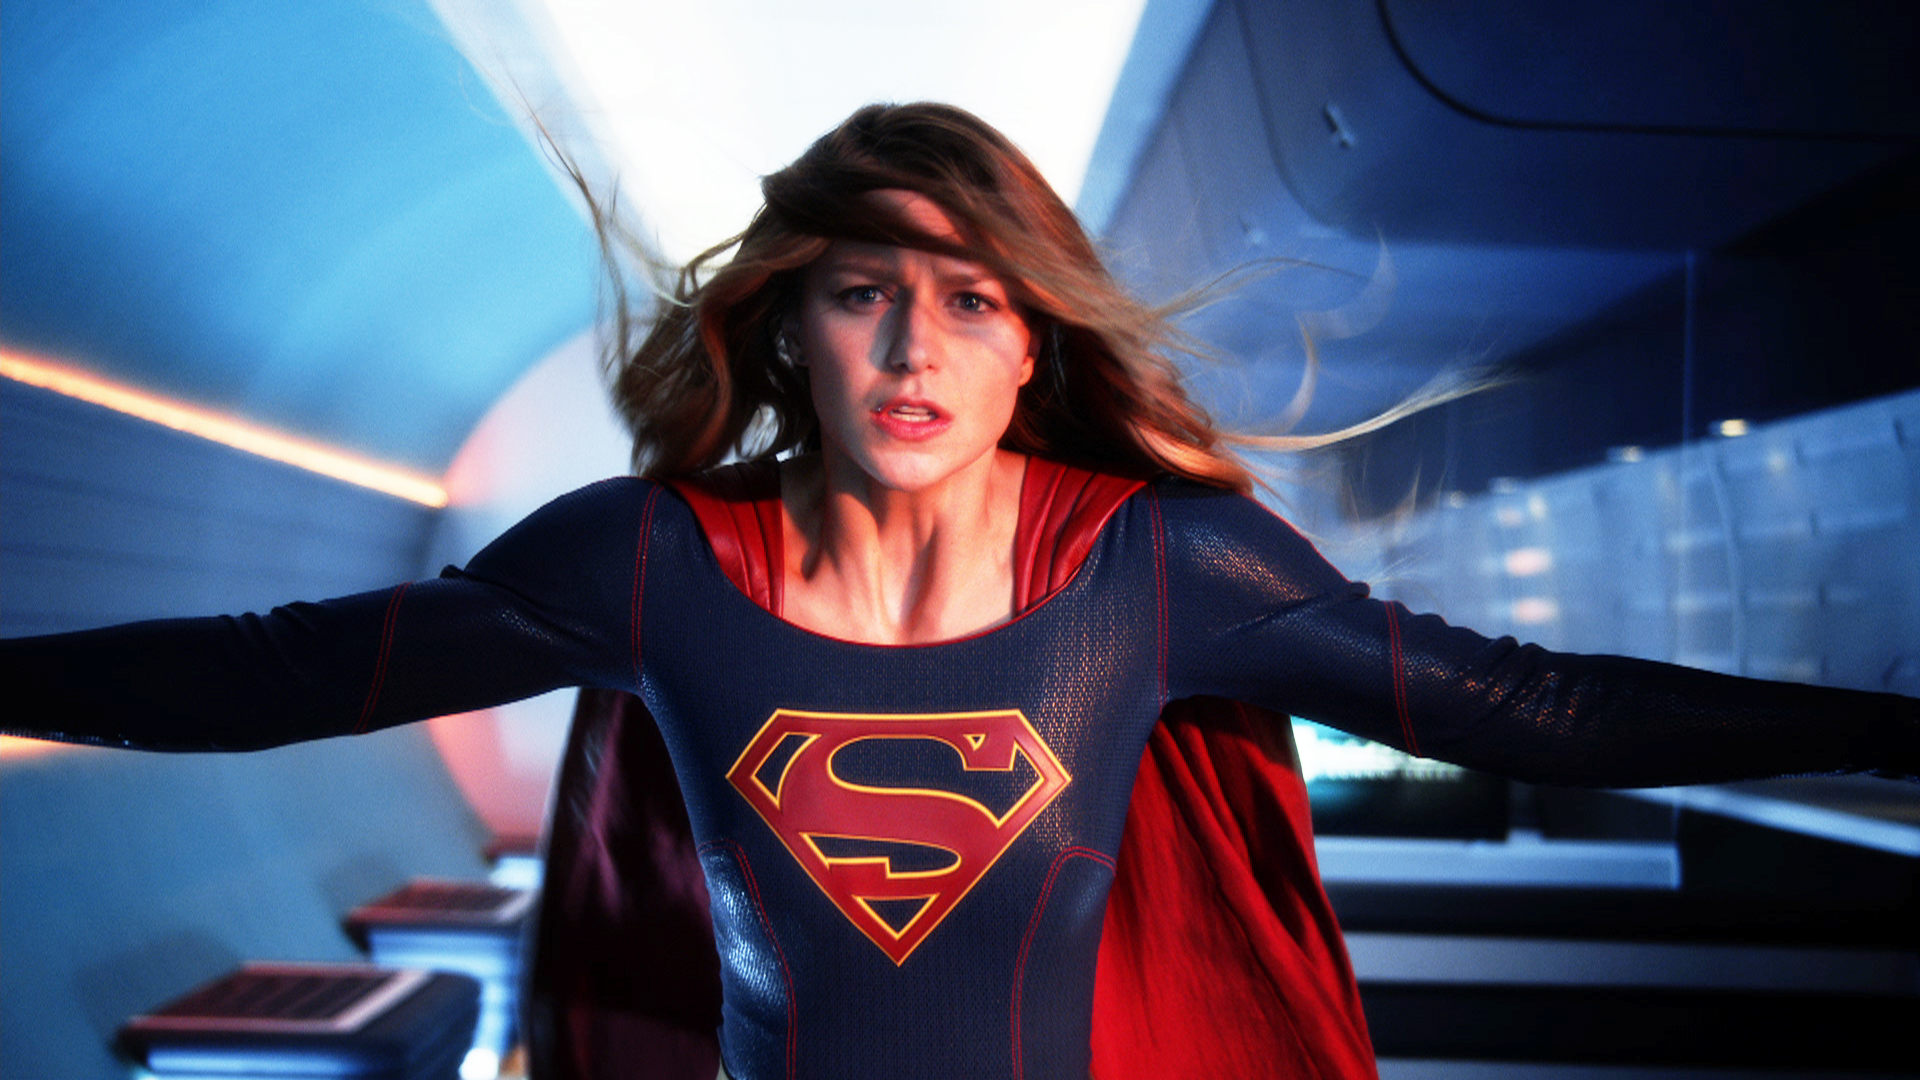 Supergirl Under Heat